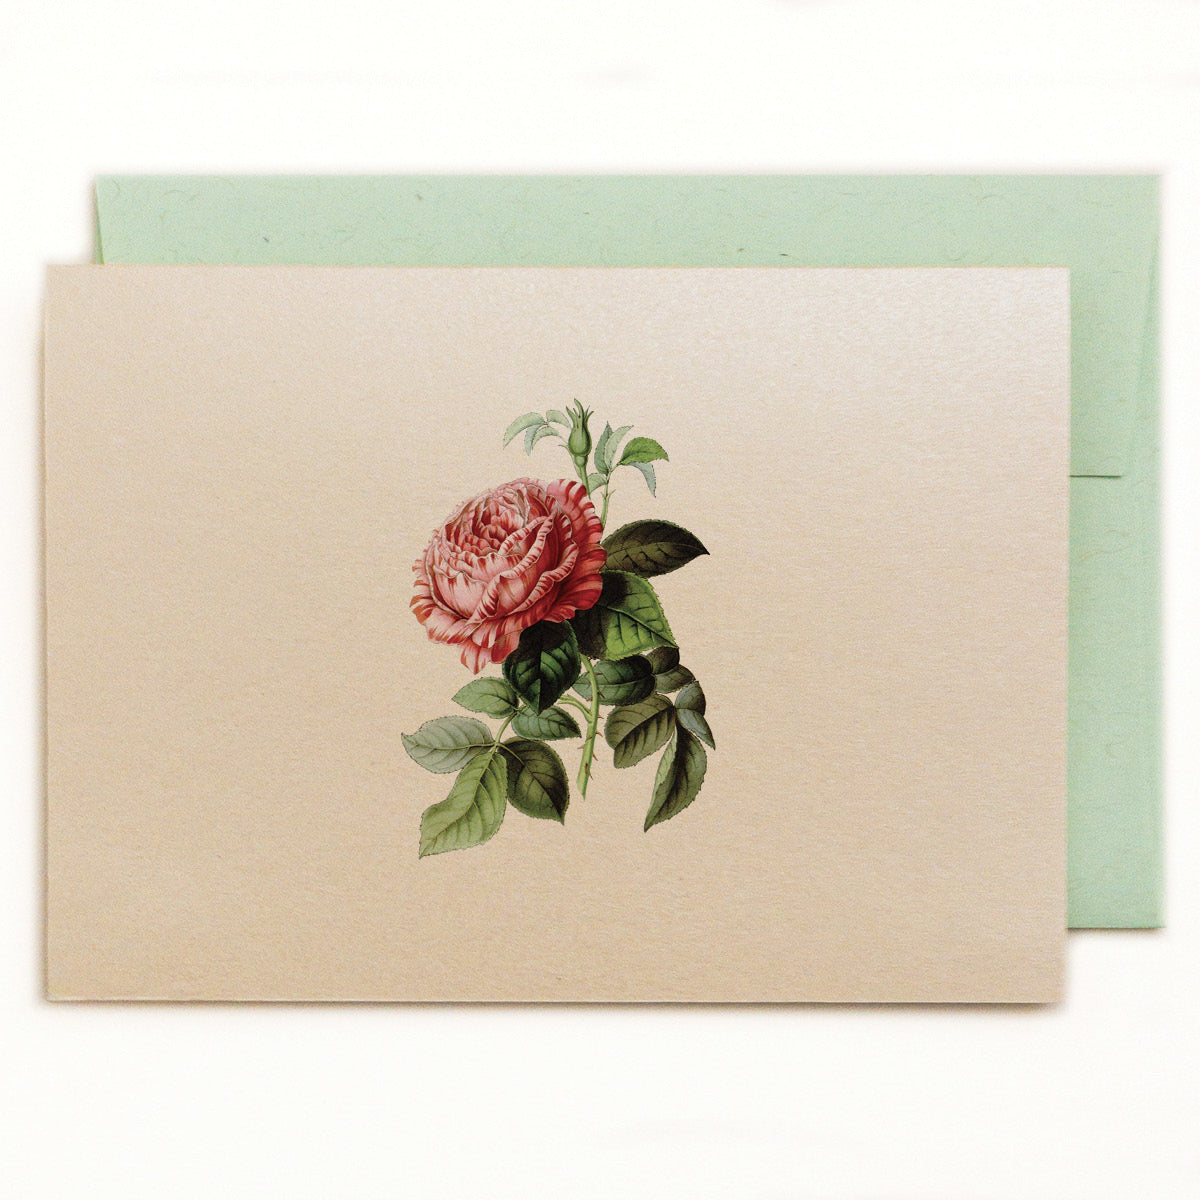 Heirloom rose on a soft white, shimmery metallic cardstock with a vintage green envelope